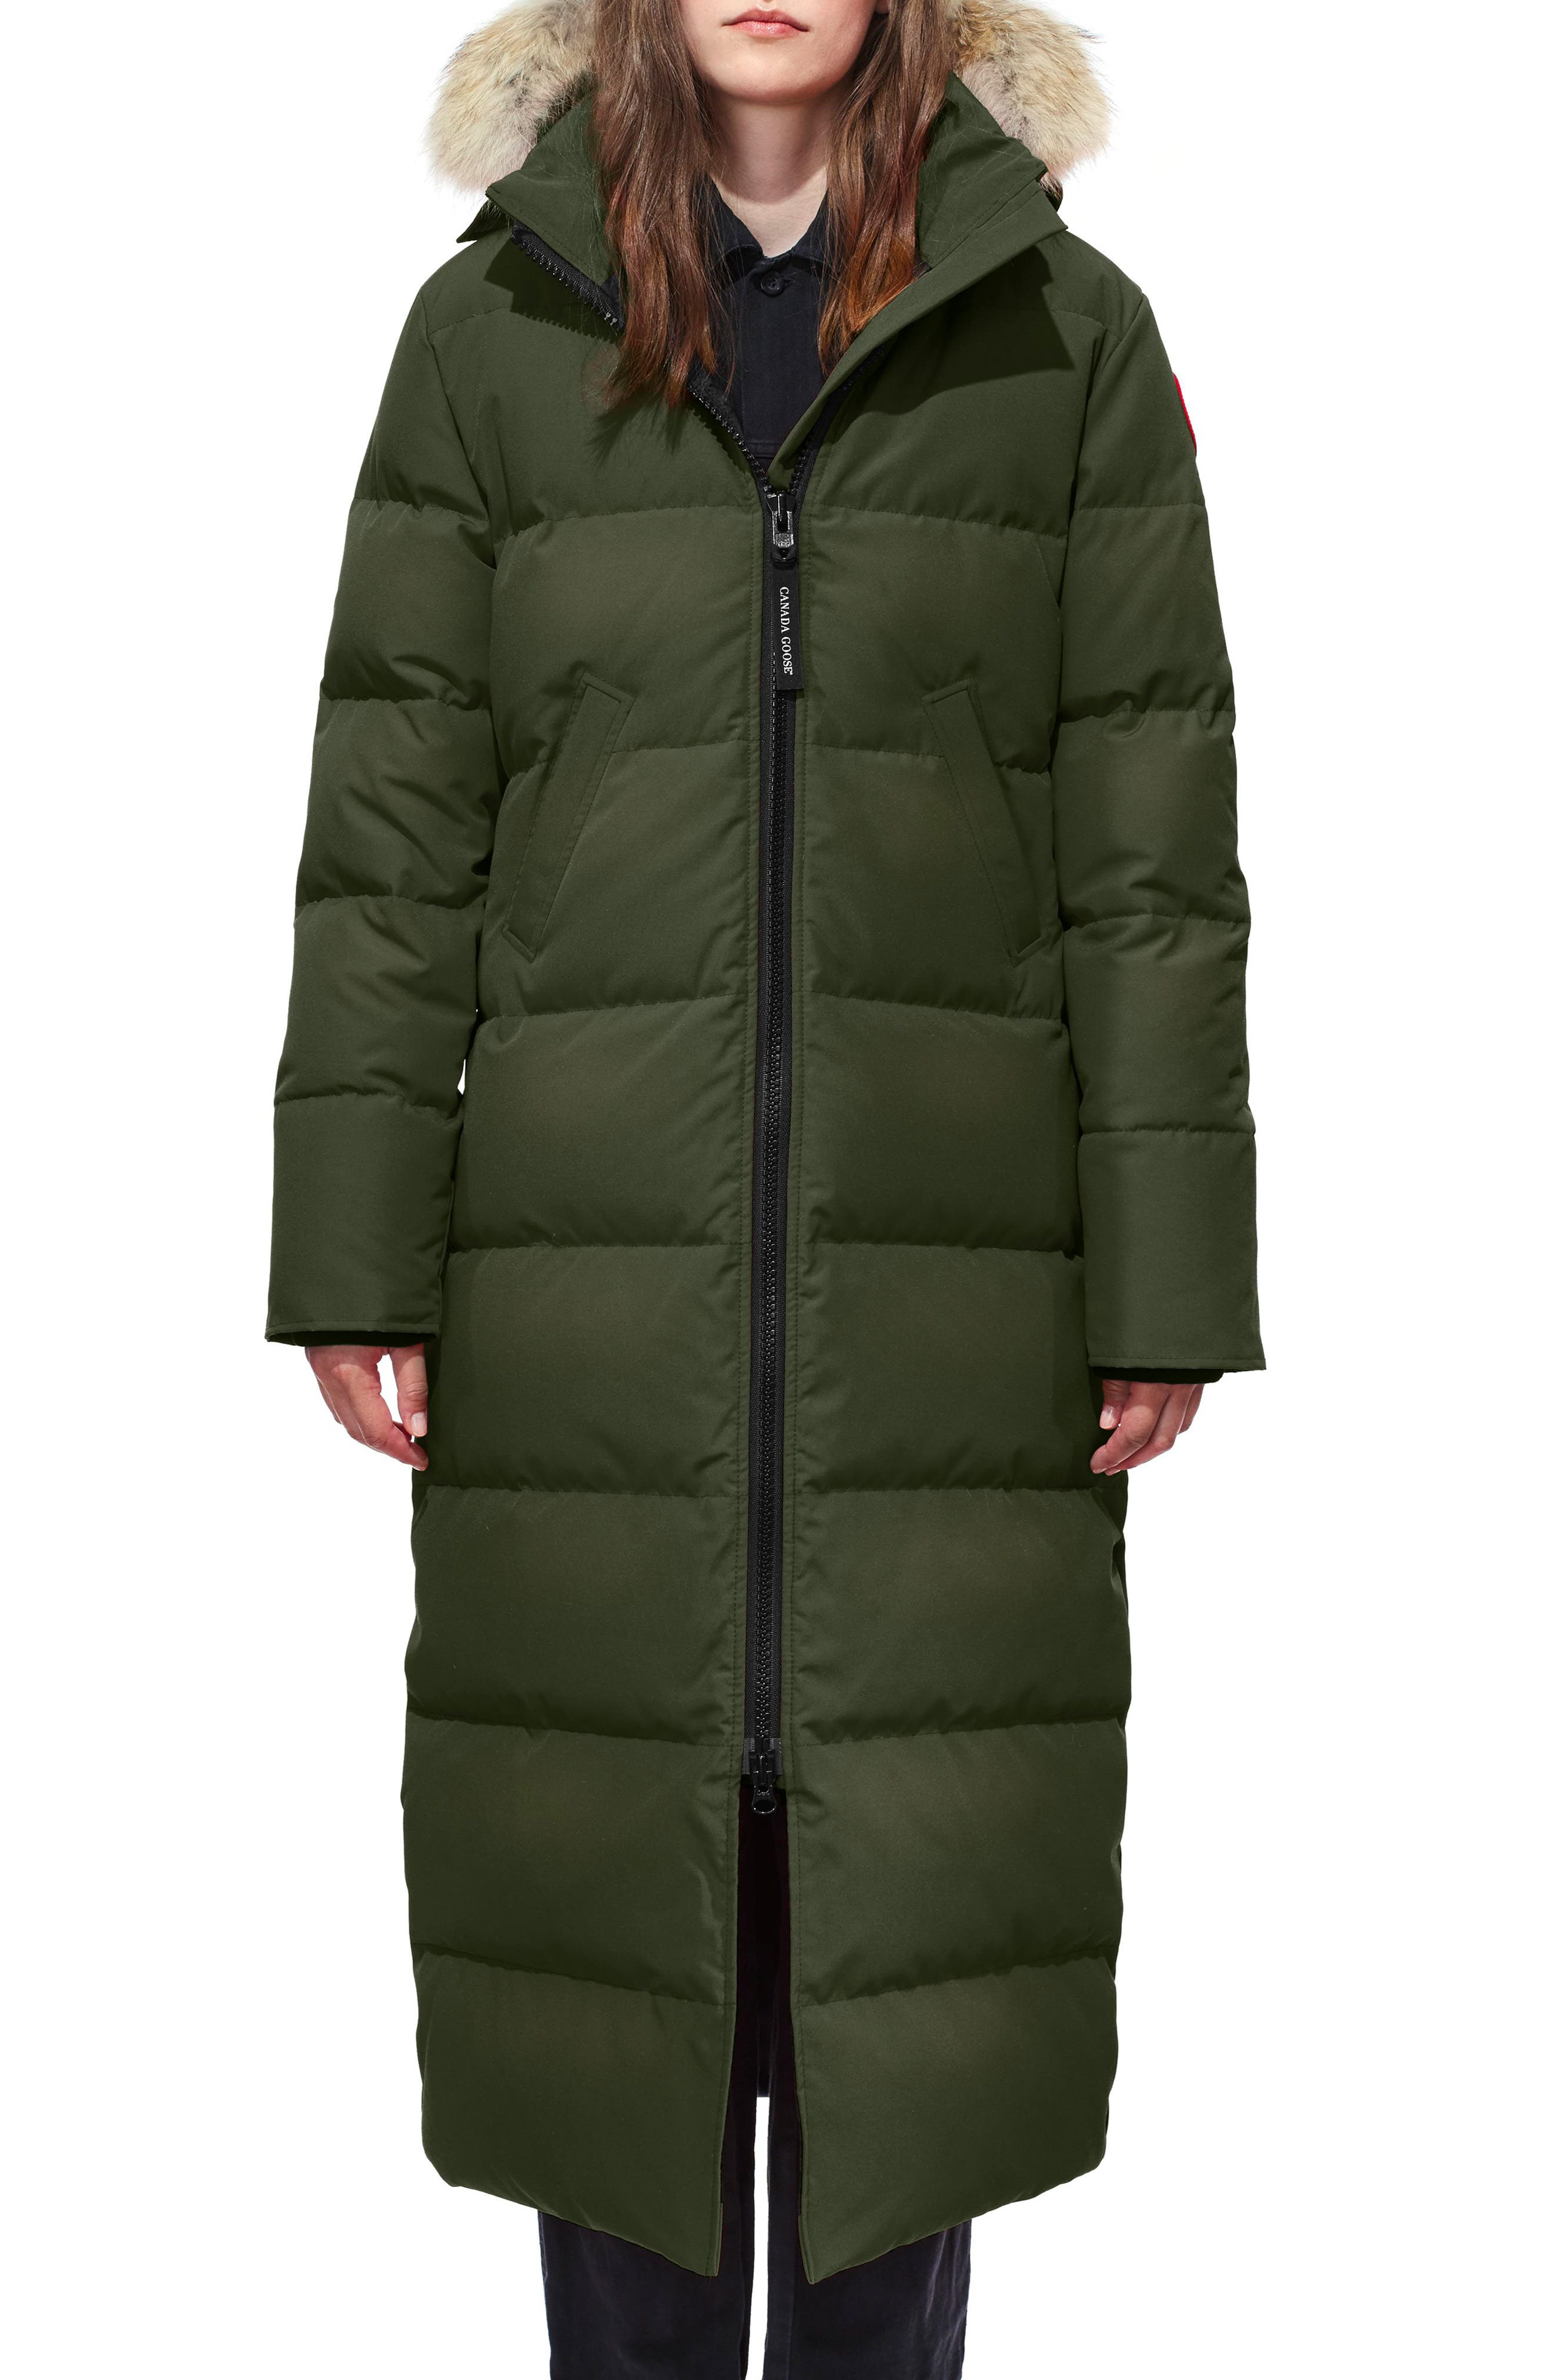 Mystique Regular Fit Down Parka with Genuine Coyote Fur Trim,                             Main thumbnail 1, color,                             MILITARY GREEN